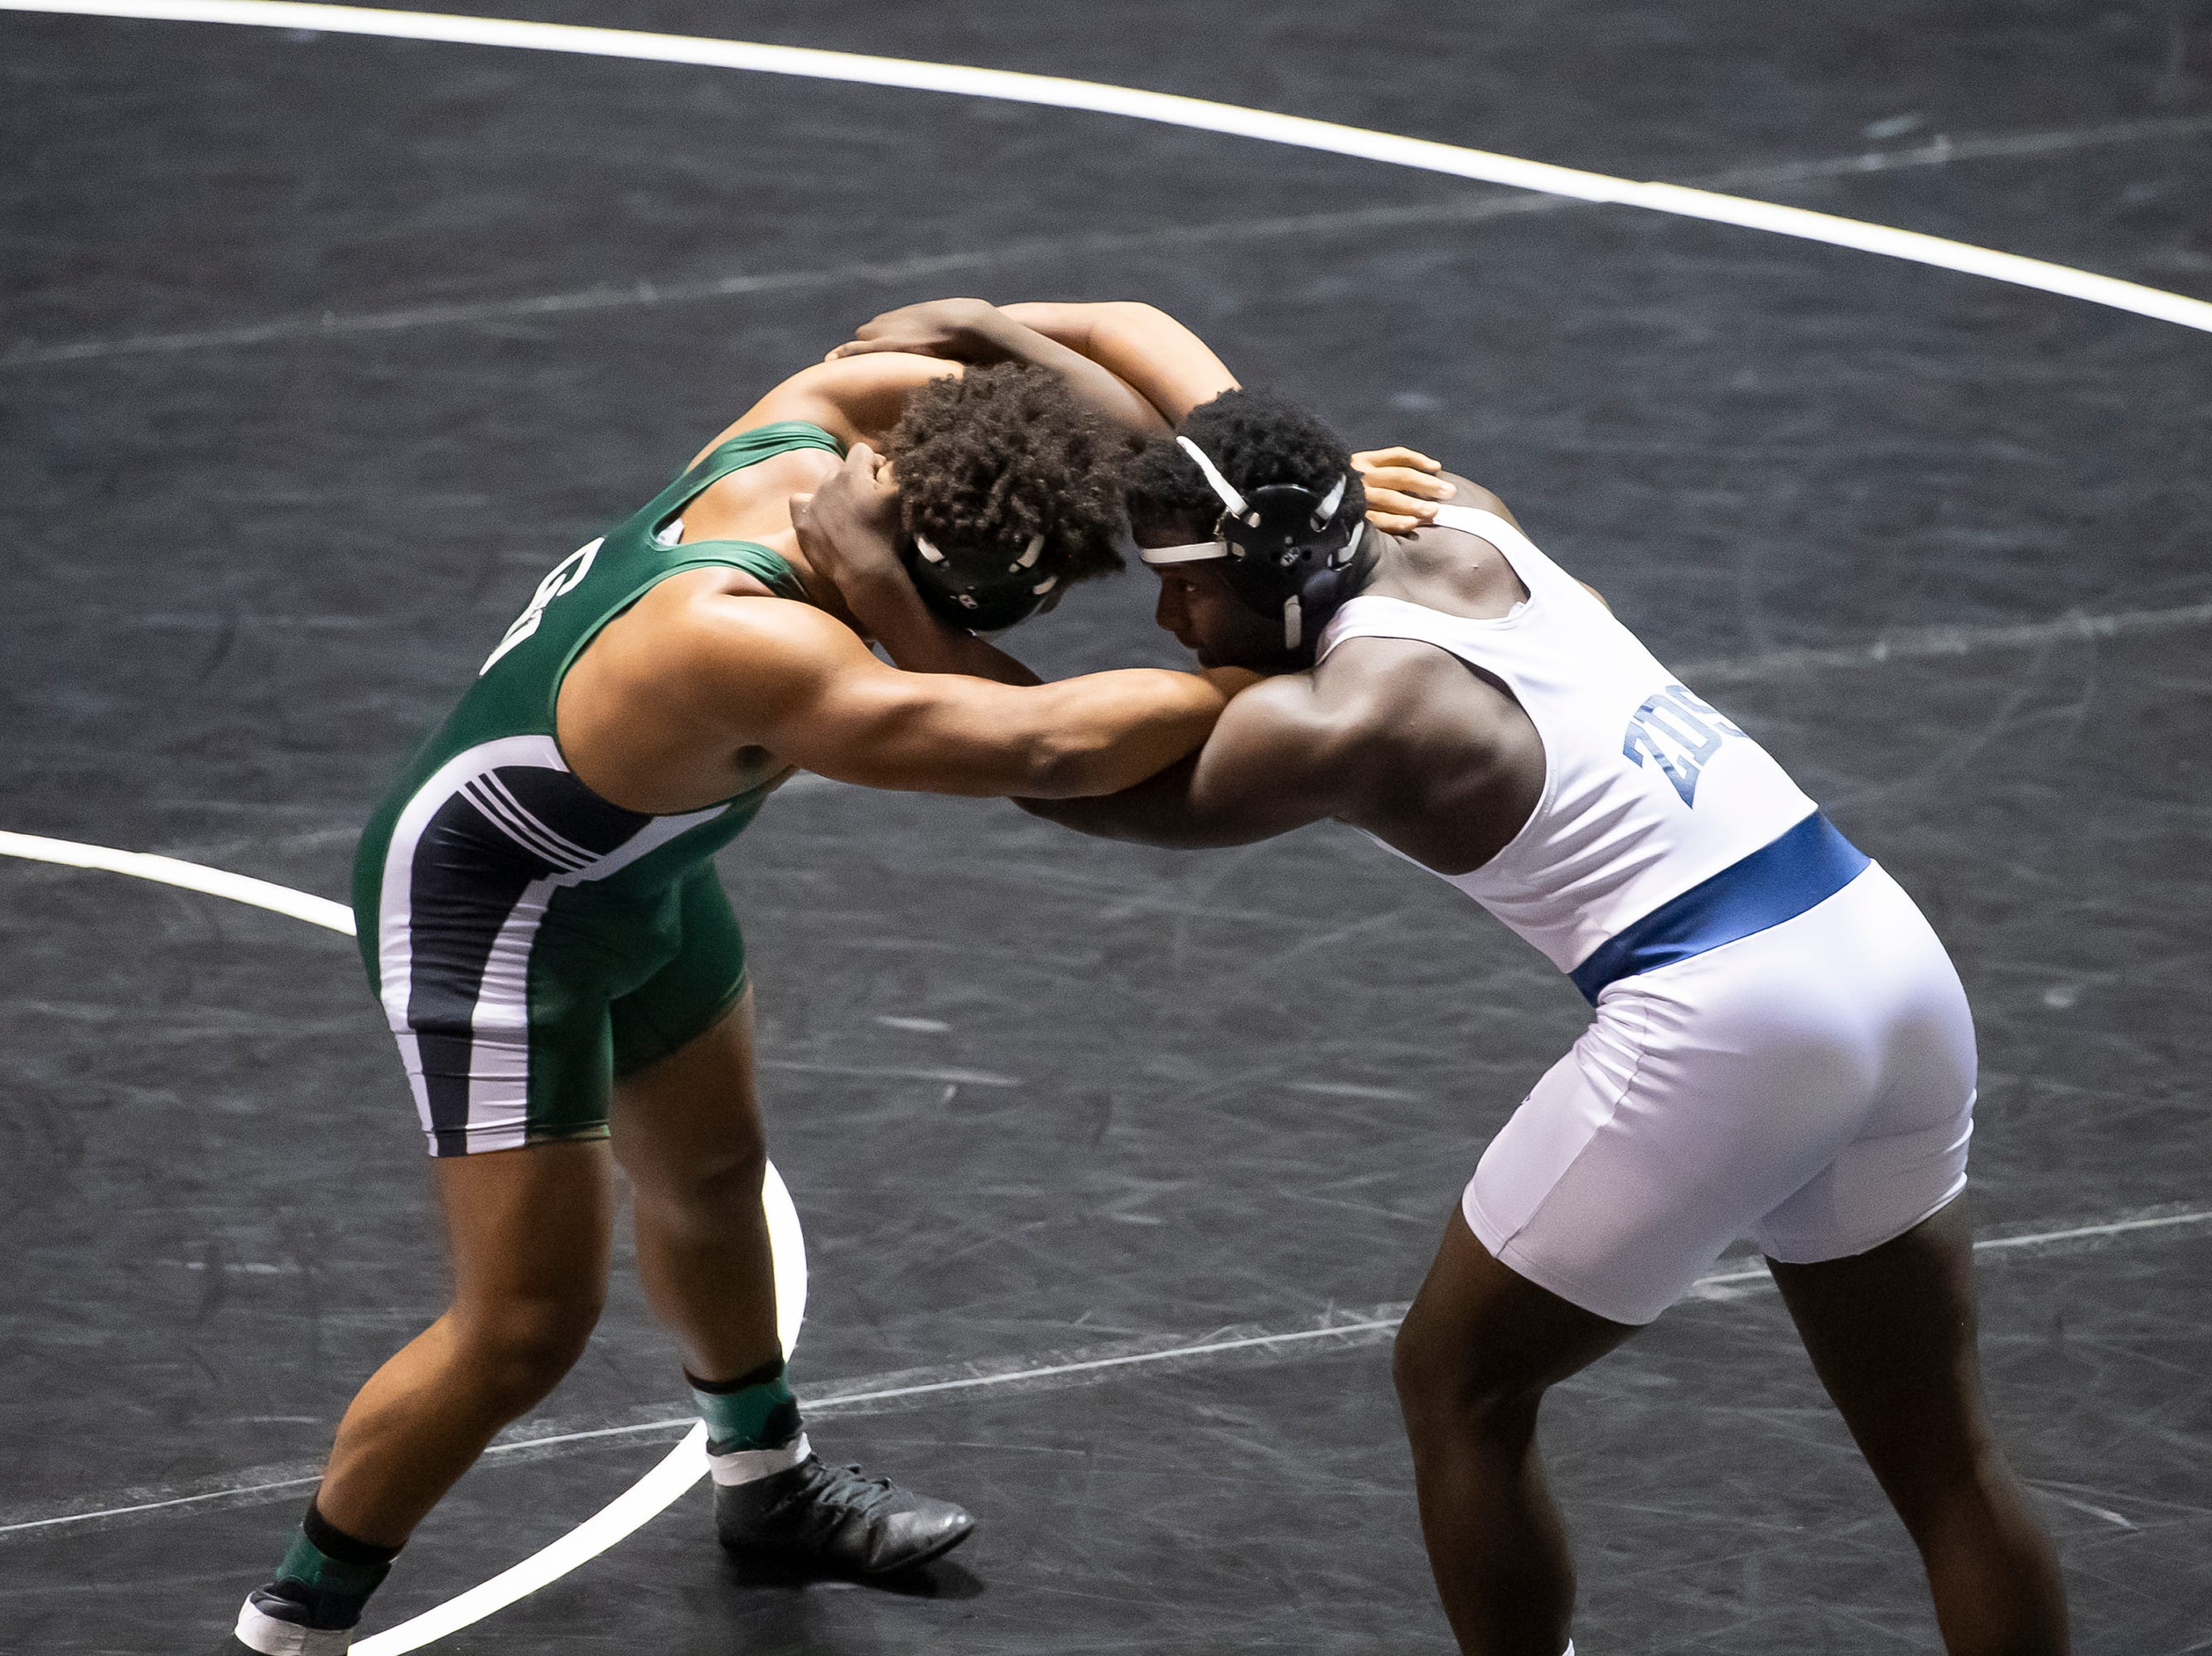 Dallastown's Jamal Brandon, right, wrestles Central Dauphin's Marques Holten during a 220-pound championship bout at the District 3 wrestling championships at Hersheypark Arena Saturday, February 23, 2019. Brandon won by fall 7:48.